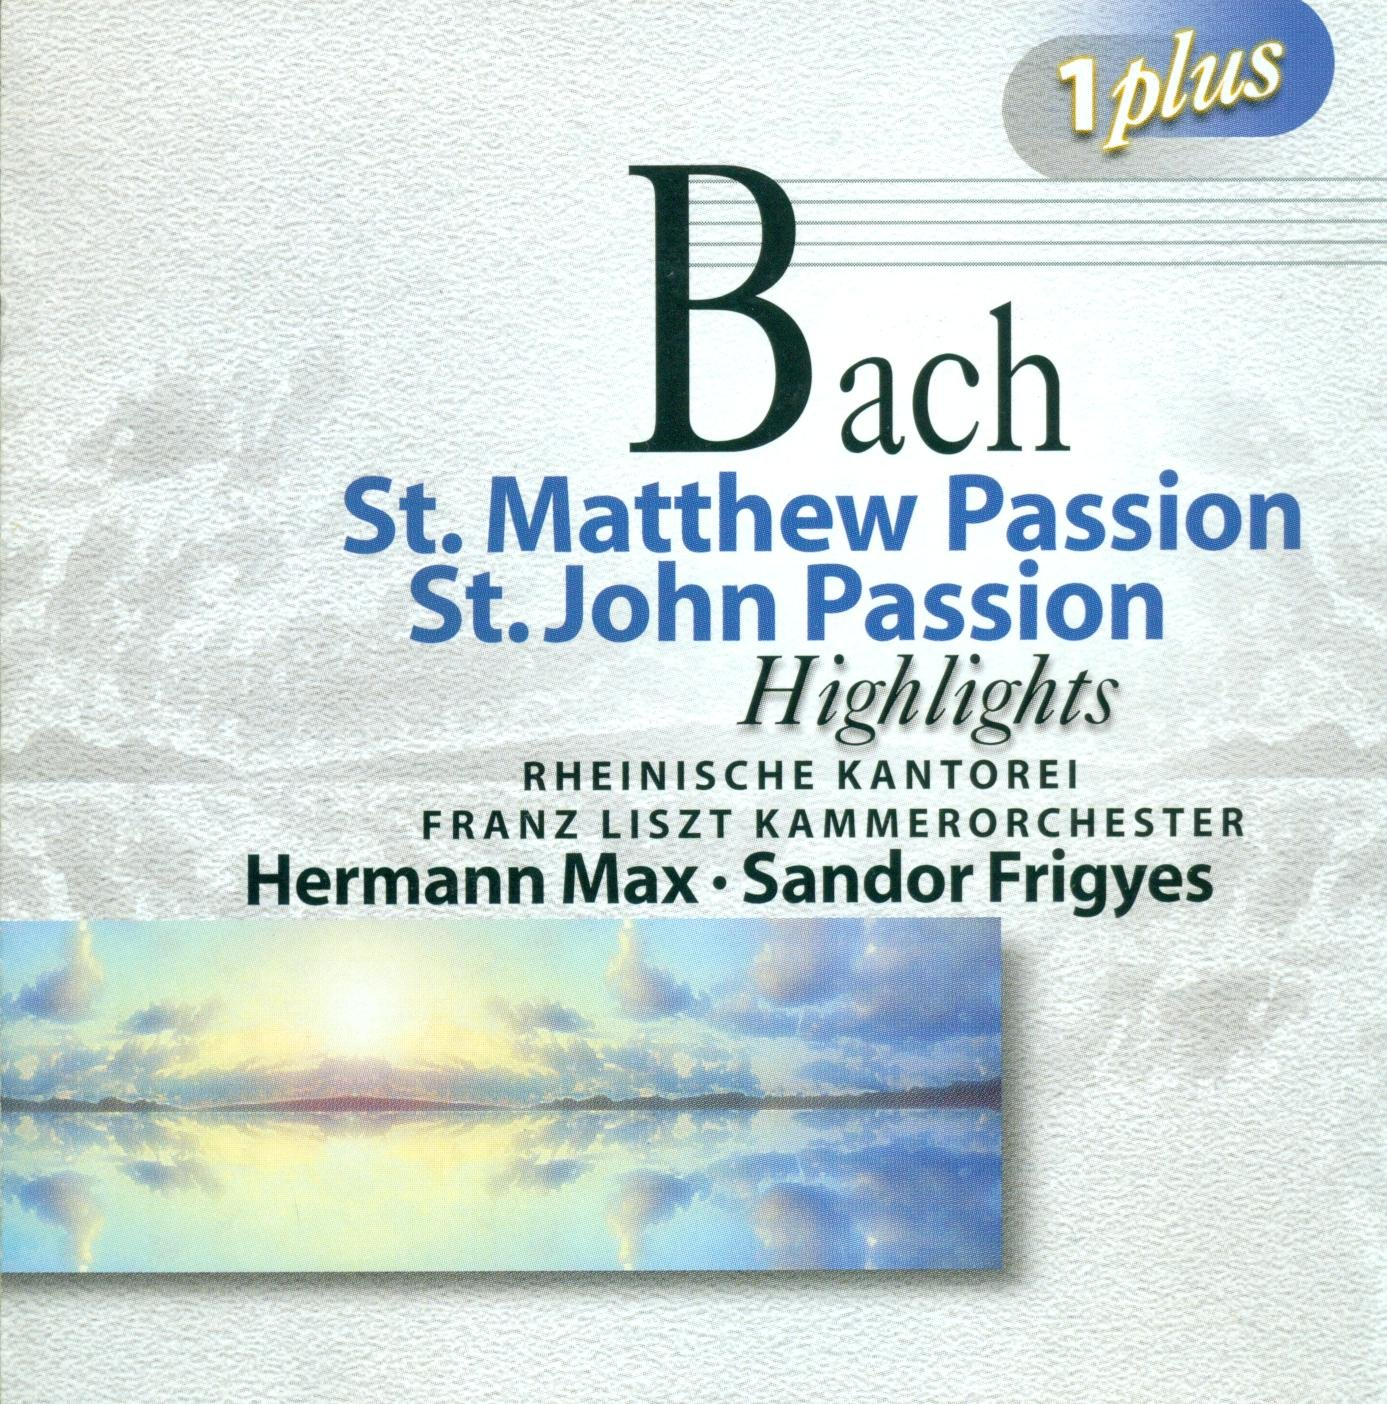 Latest item St Matthew Passion Animer and price revision